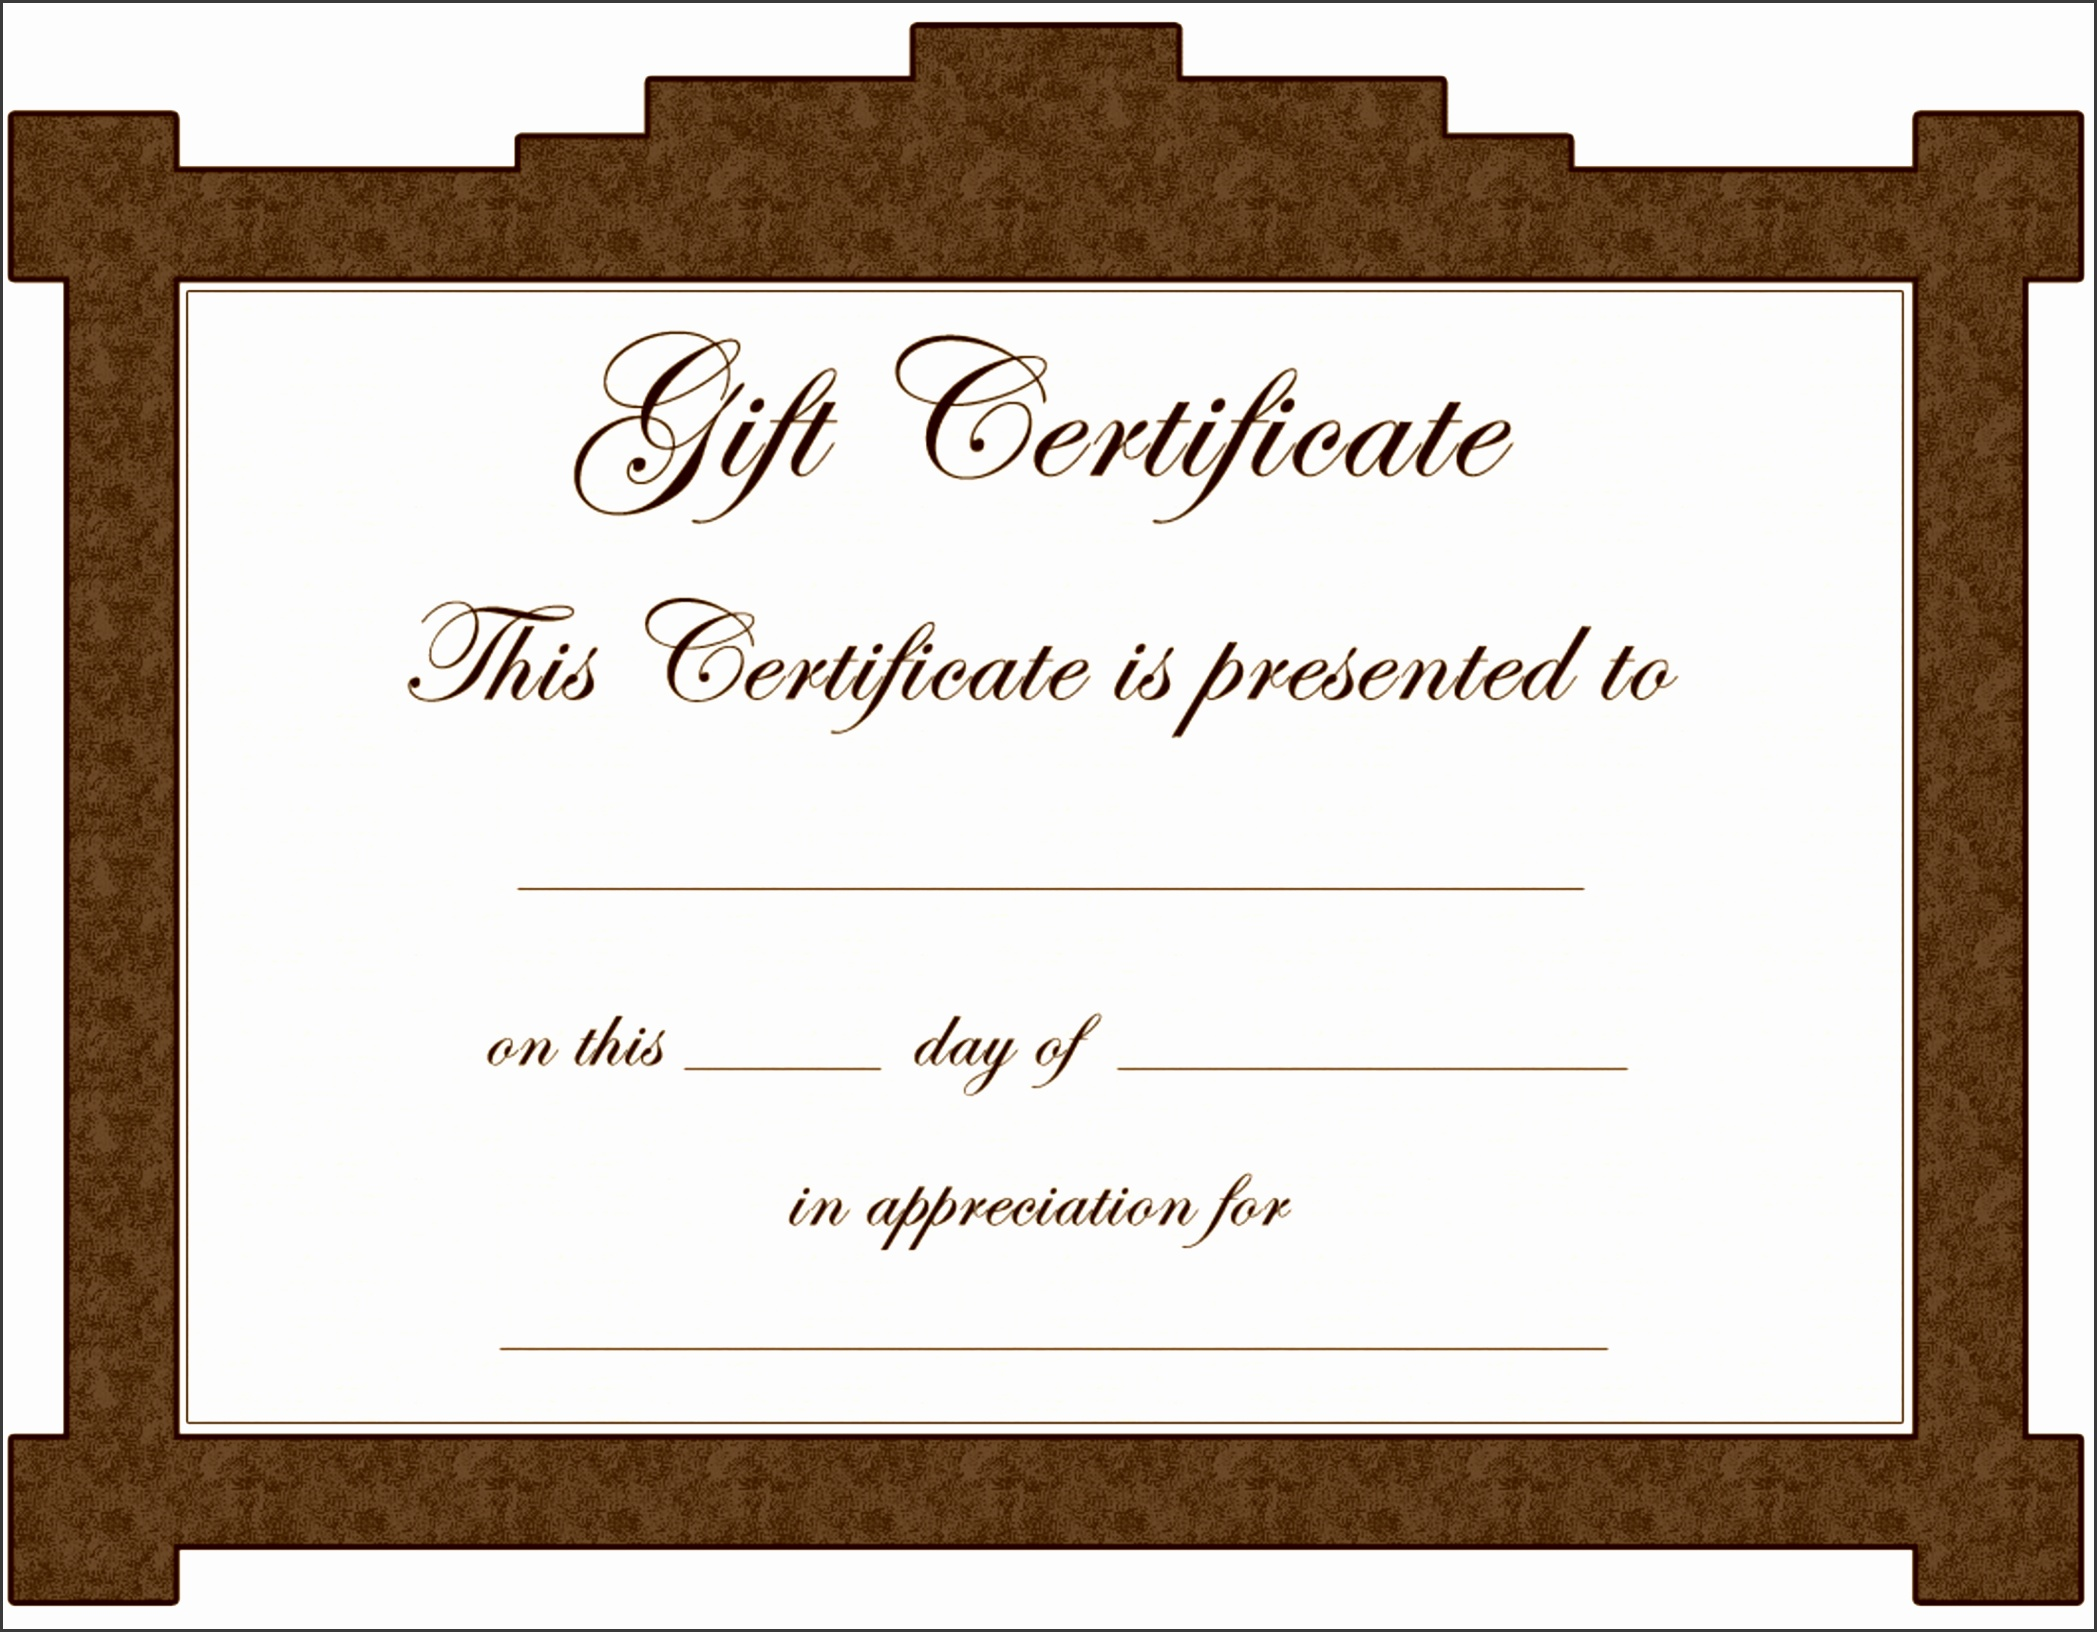 Avon Gift Certificate Template